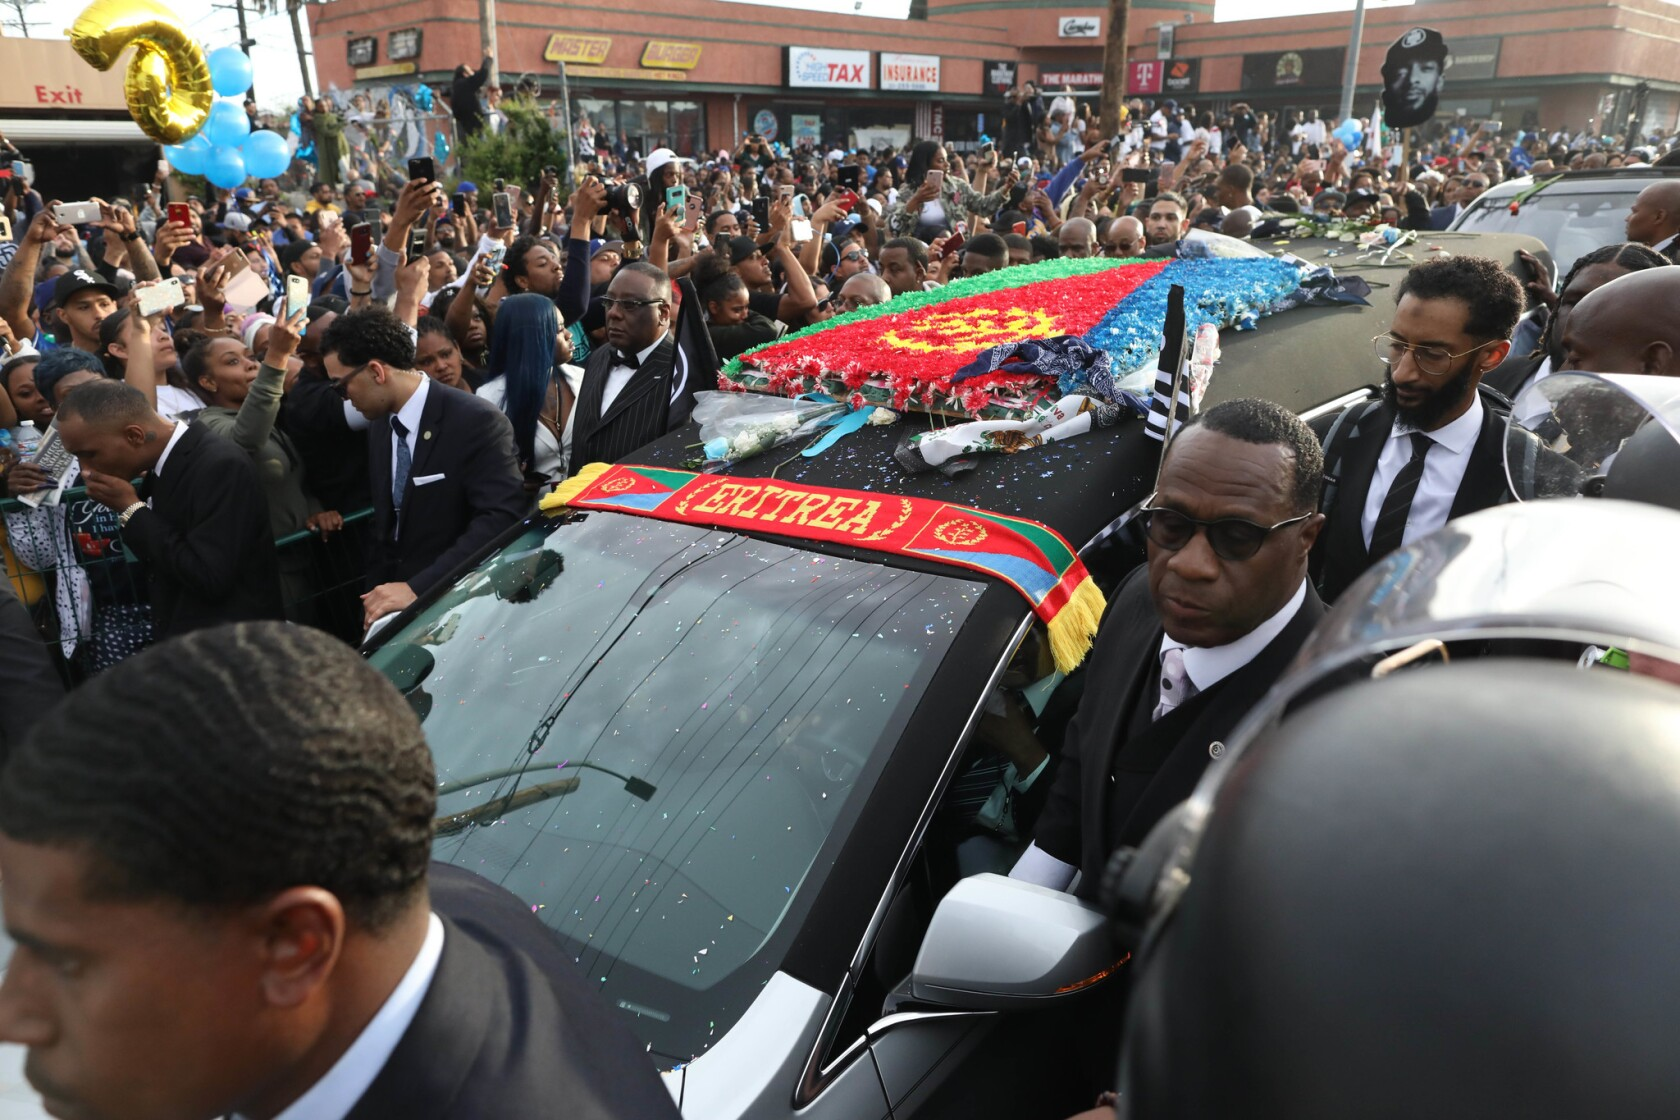 Tens of thousands mourn Nipsey Hussle  But his memorial